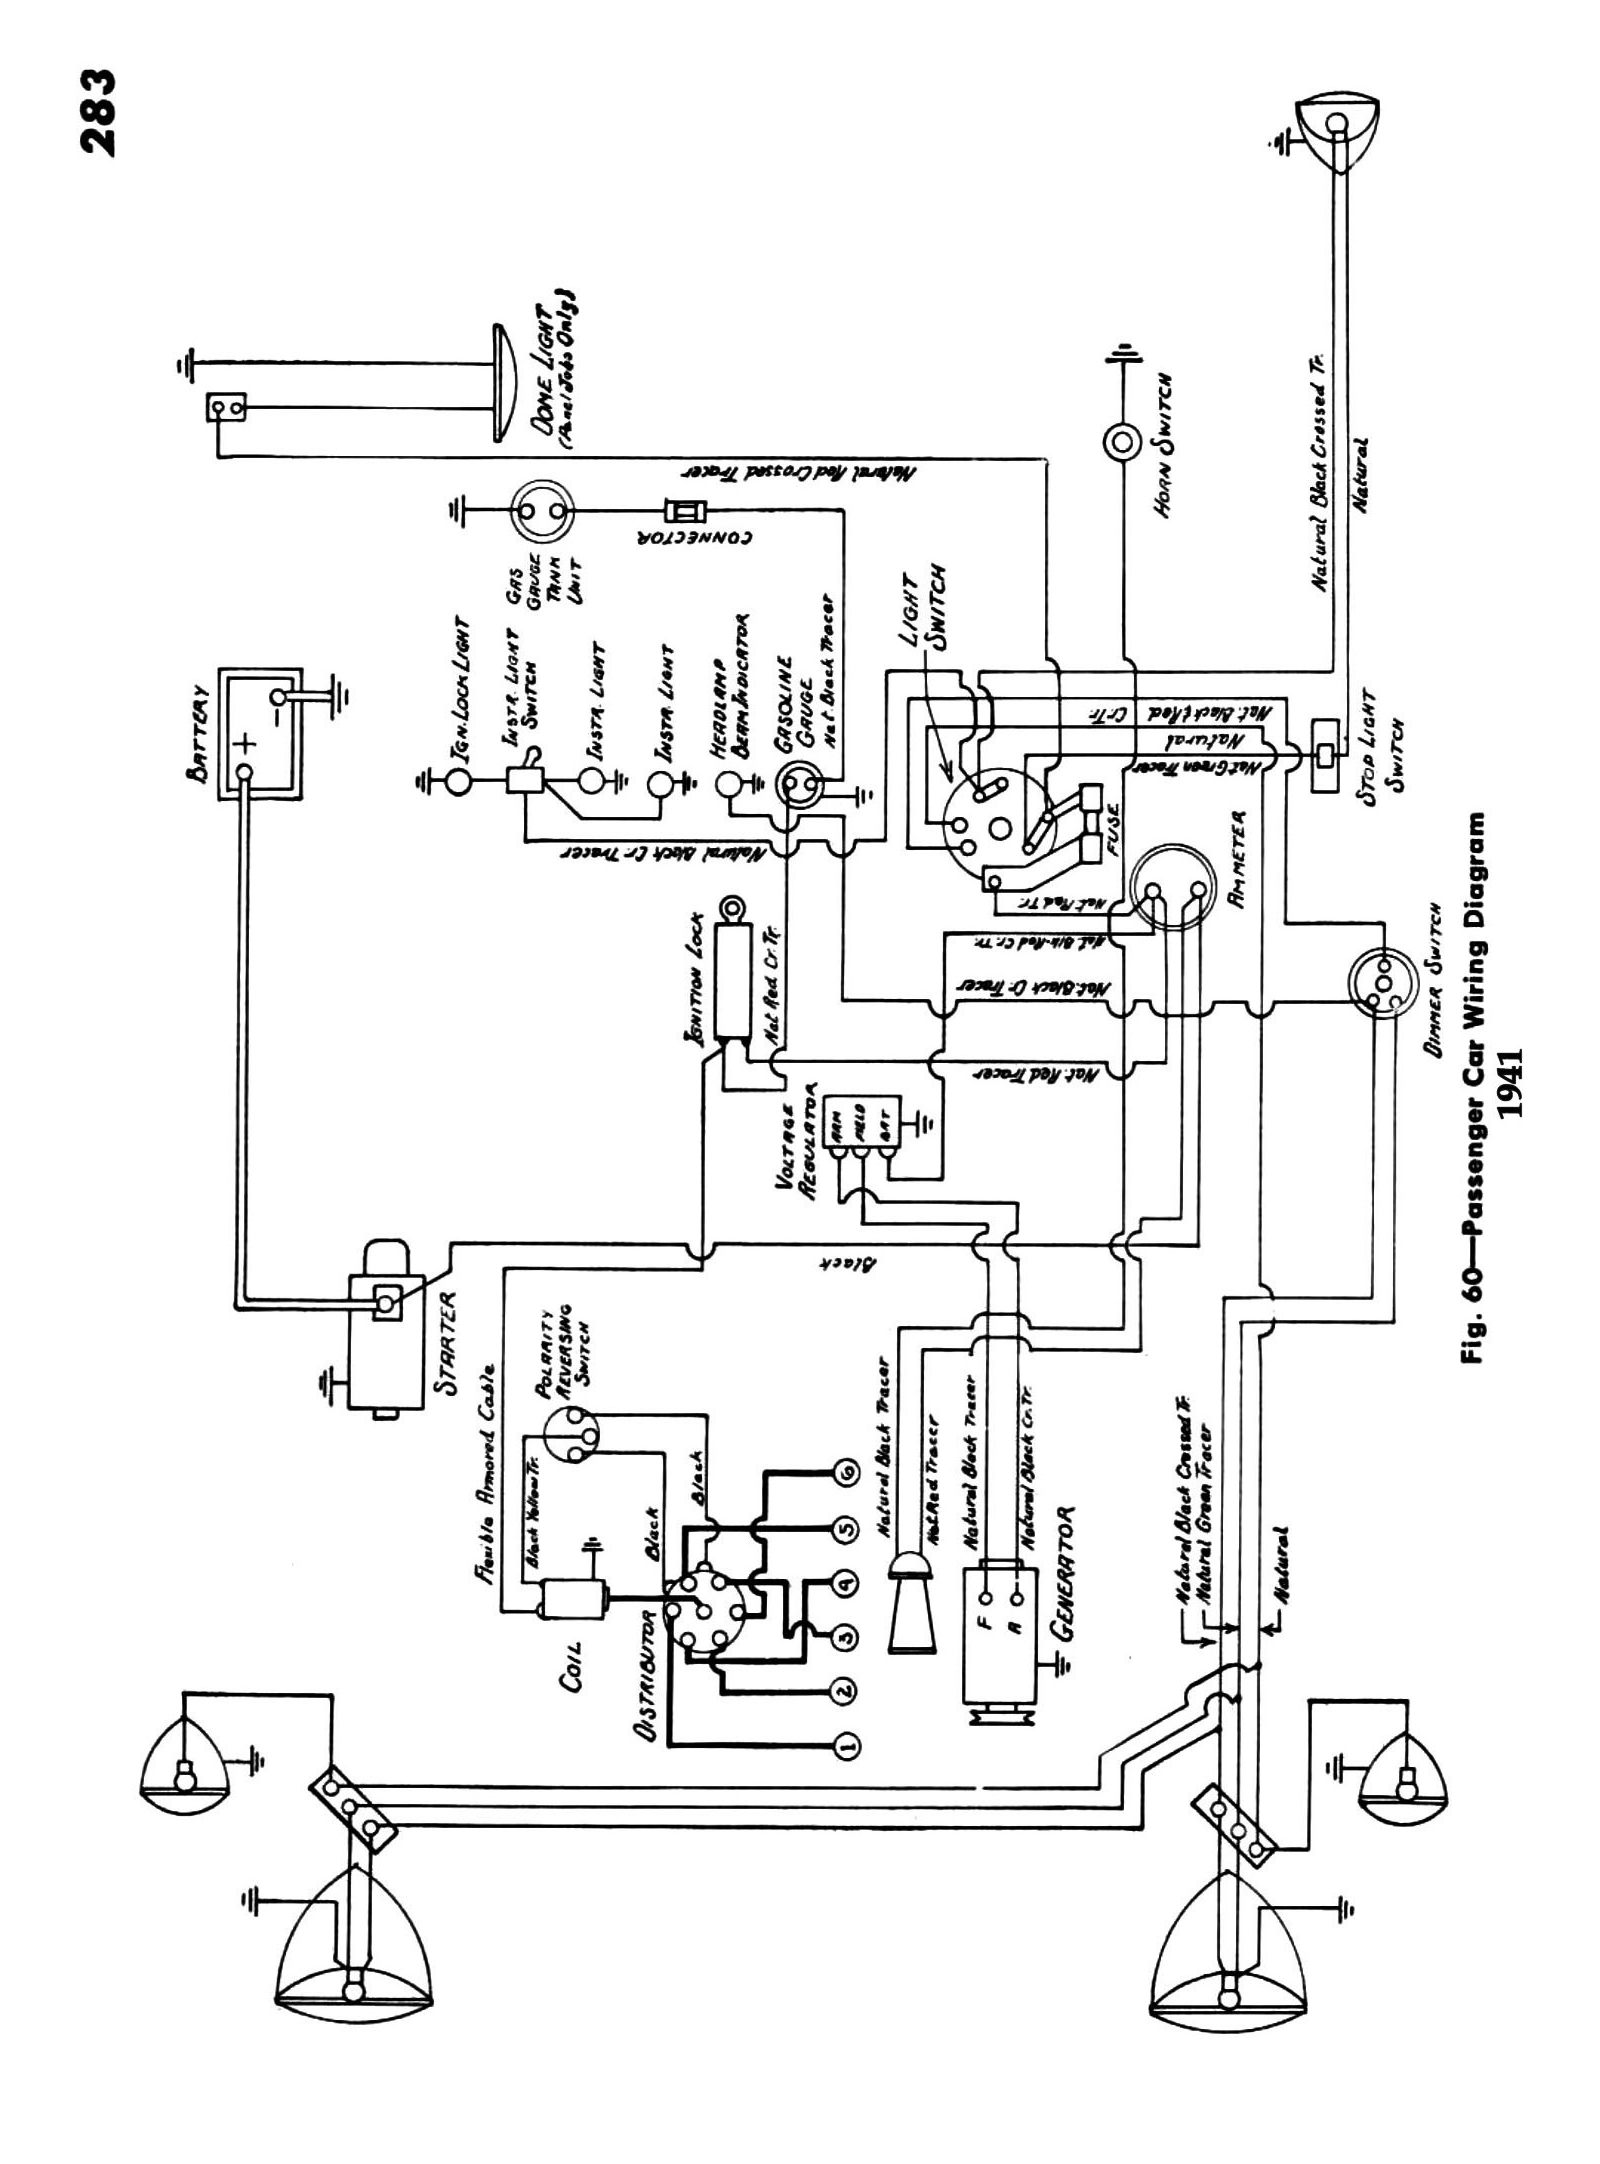 58 Chevy Truck Wiring Diagram The Portal And Forum Of 1973 Pickup Diagrams Rh Oldcarmanualproject Com 1975